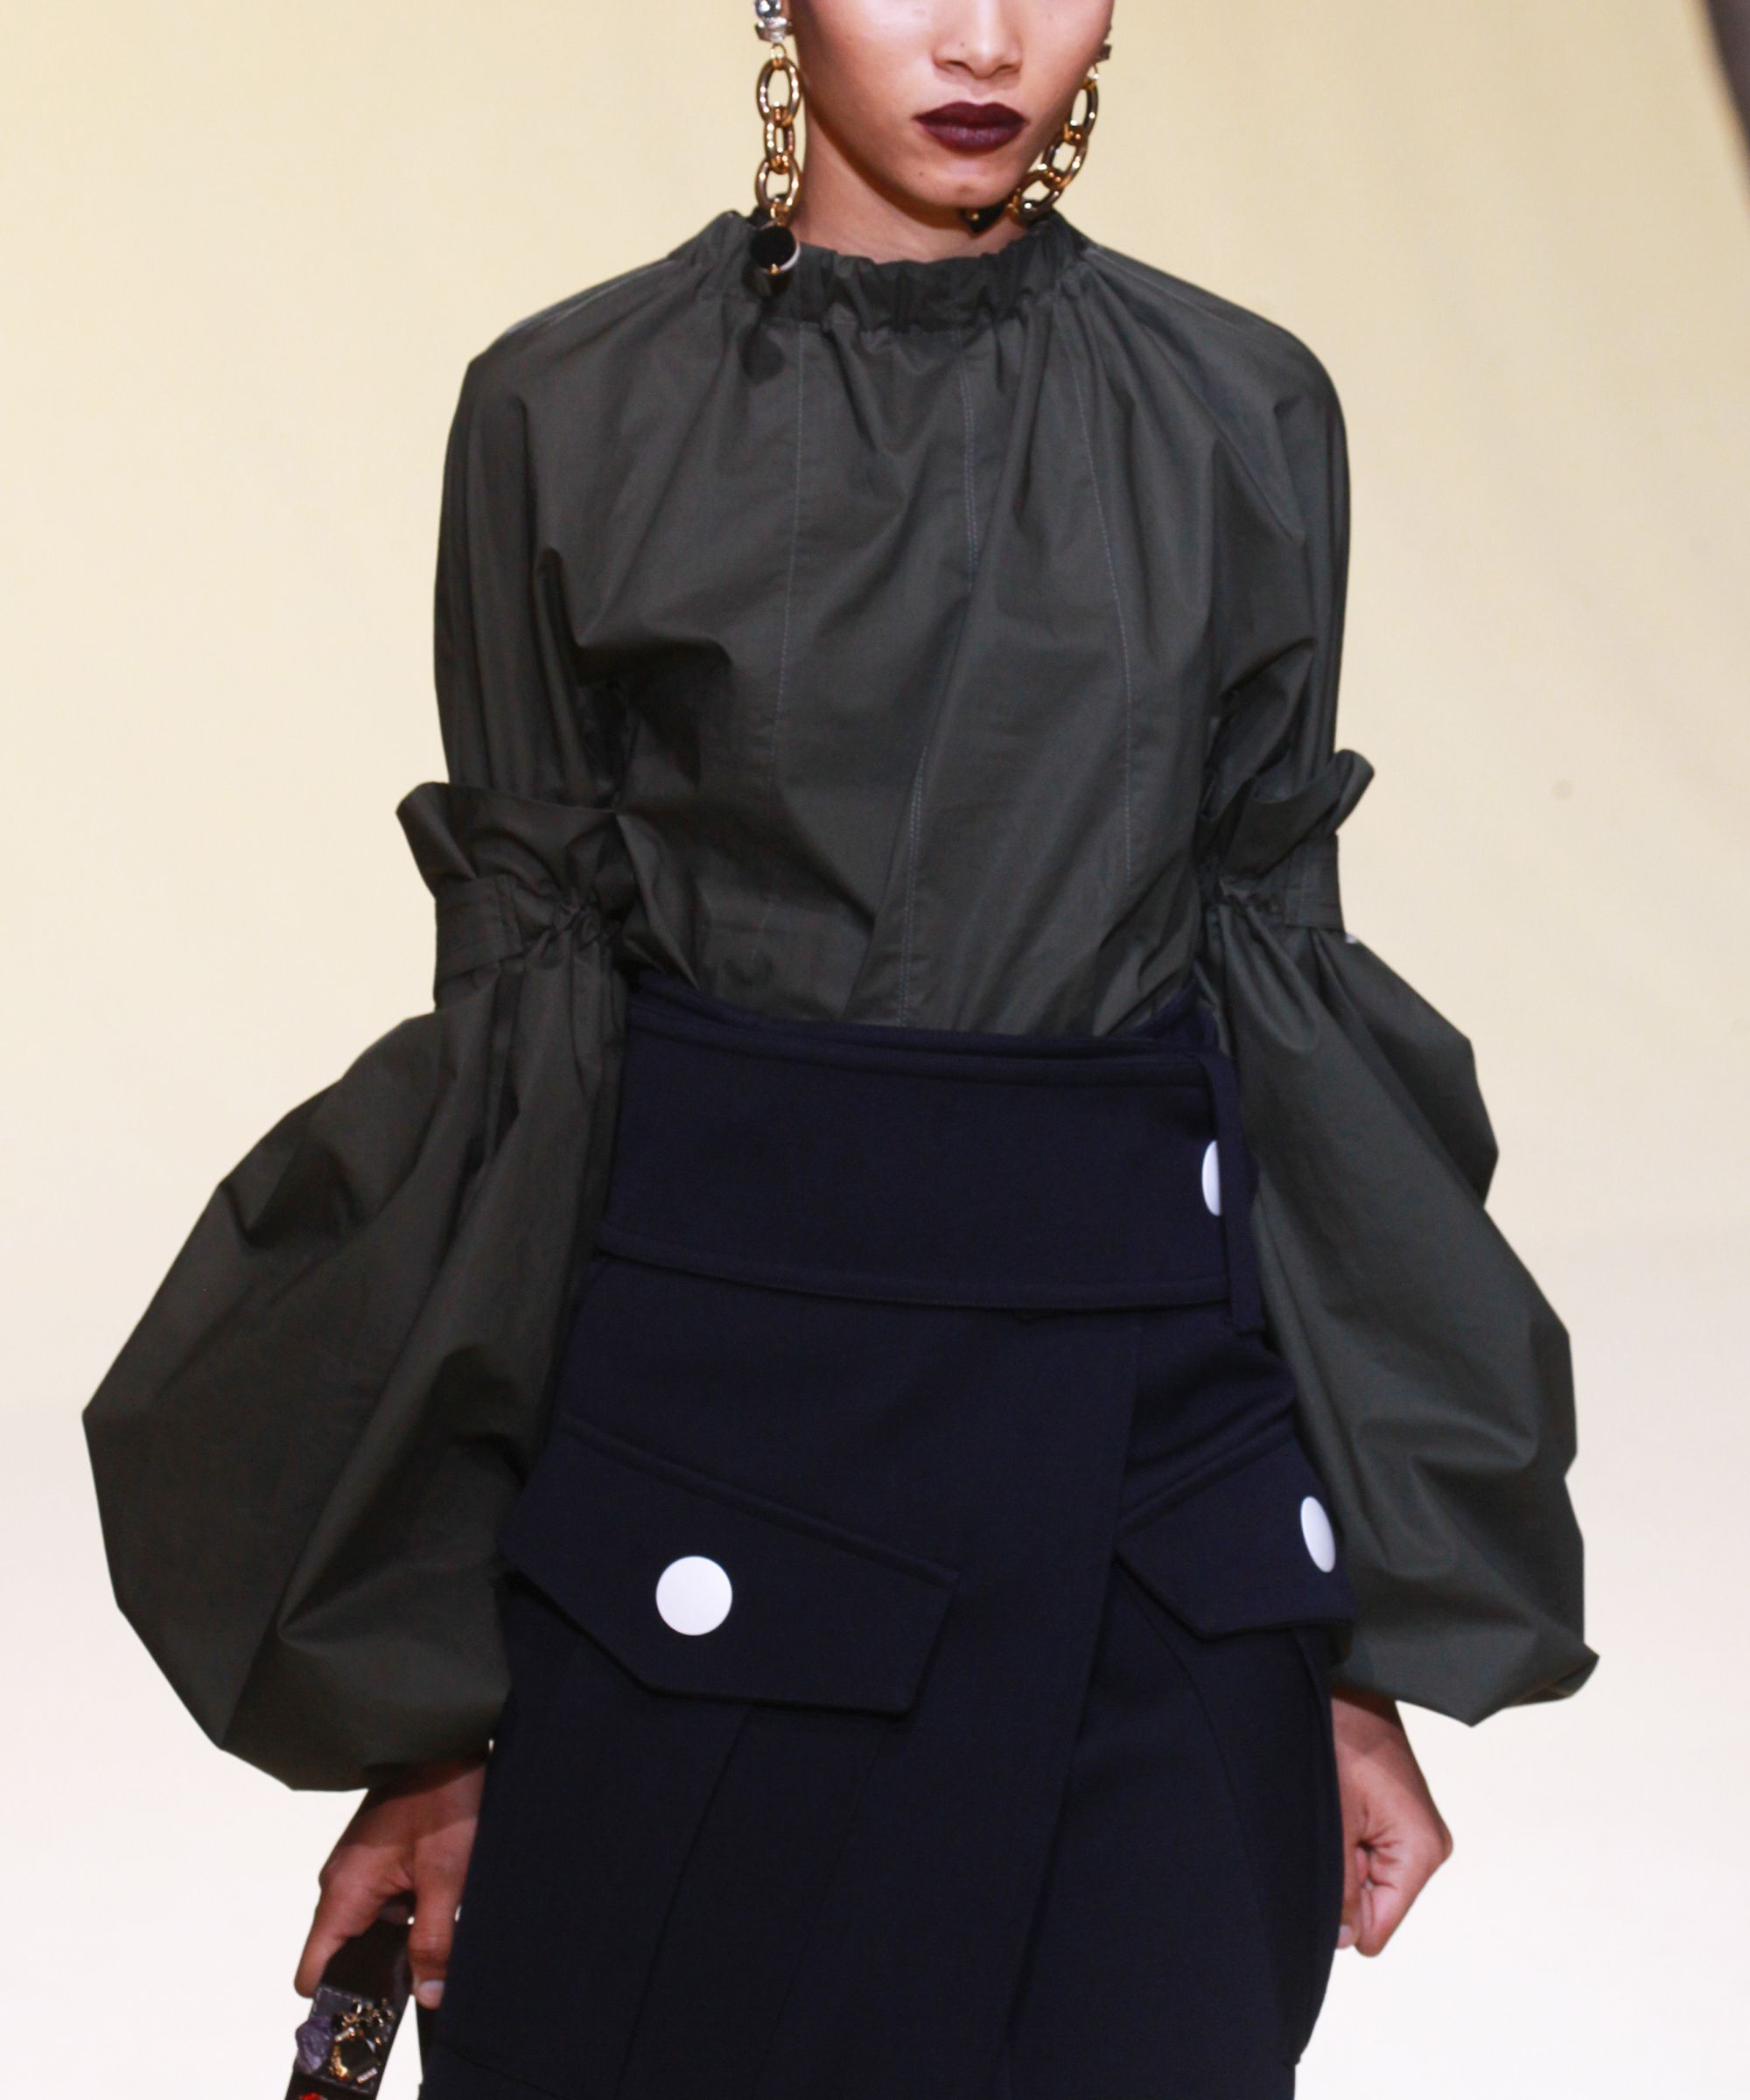 Beyond Bell Sleeves: 5 New Shapes To Know #refinery29  http://www.refinery29.com/2016/02/104186/marni-sleeves-mfw-2016